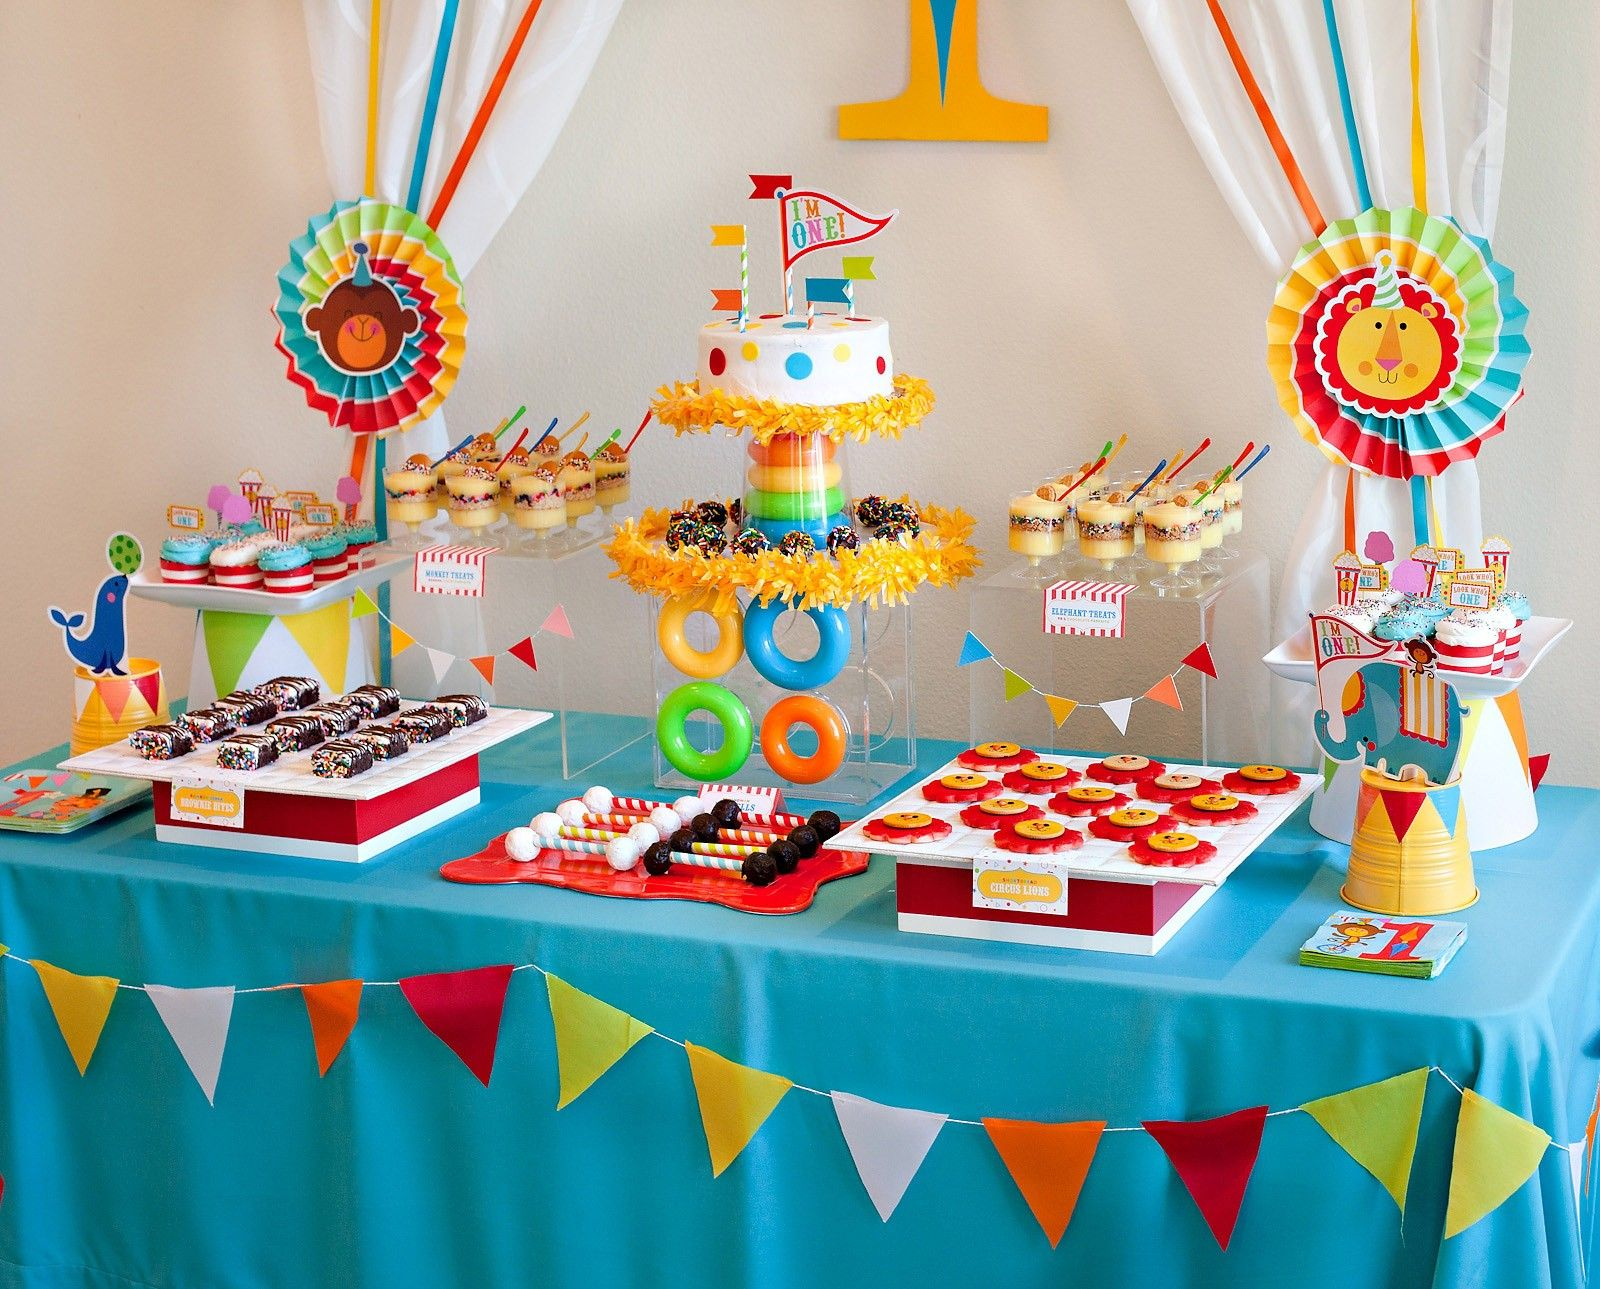 Hostess With The Mostess First Birthday Party Ideas Diy From First Birthday Home D First Birthday Party Themes Simple Birthday Decorations Birthday Organizer